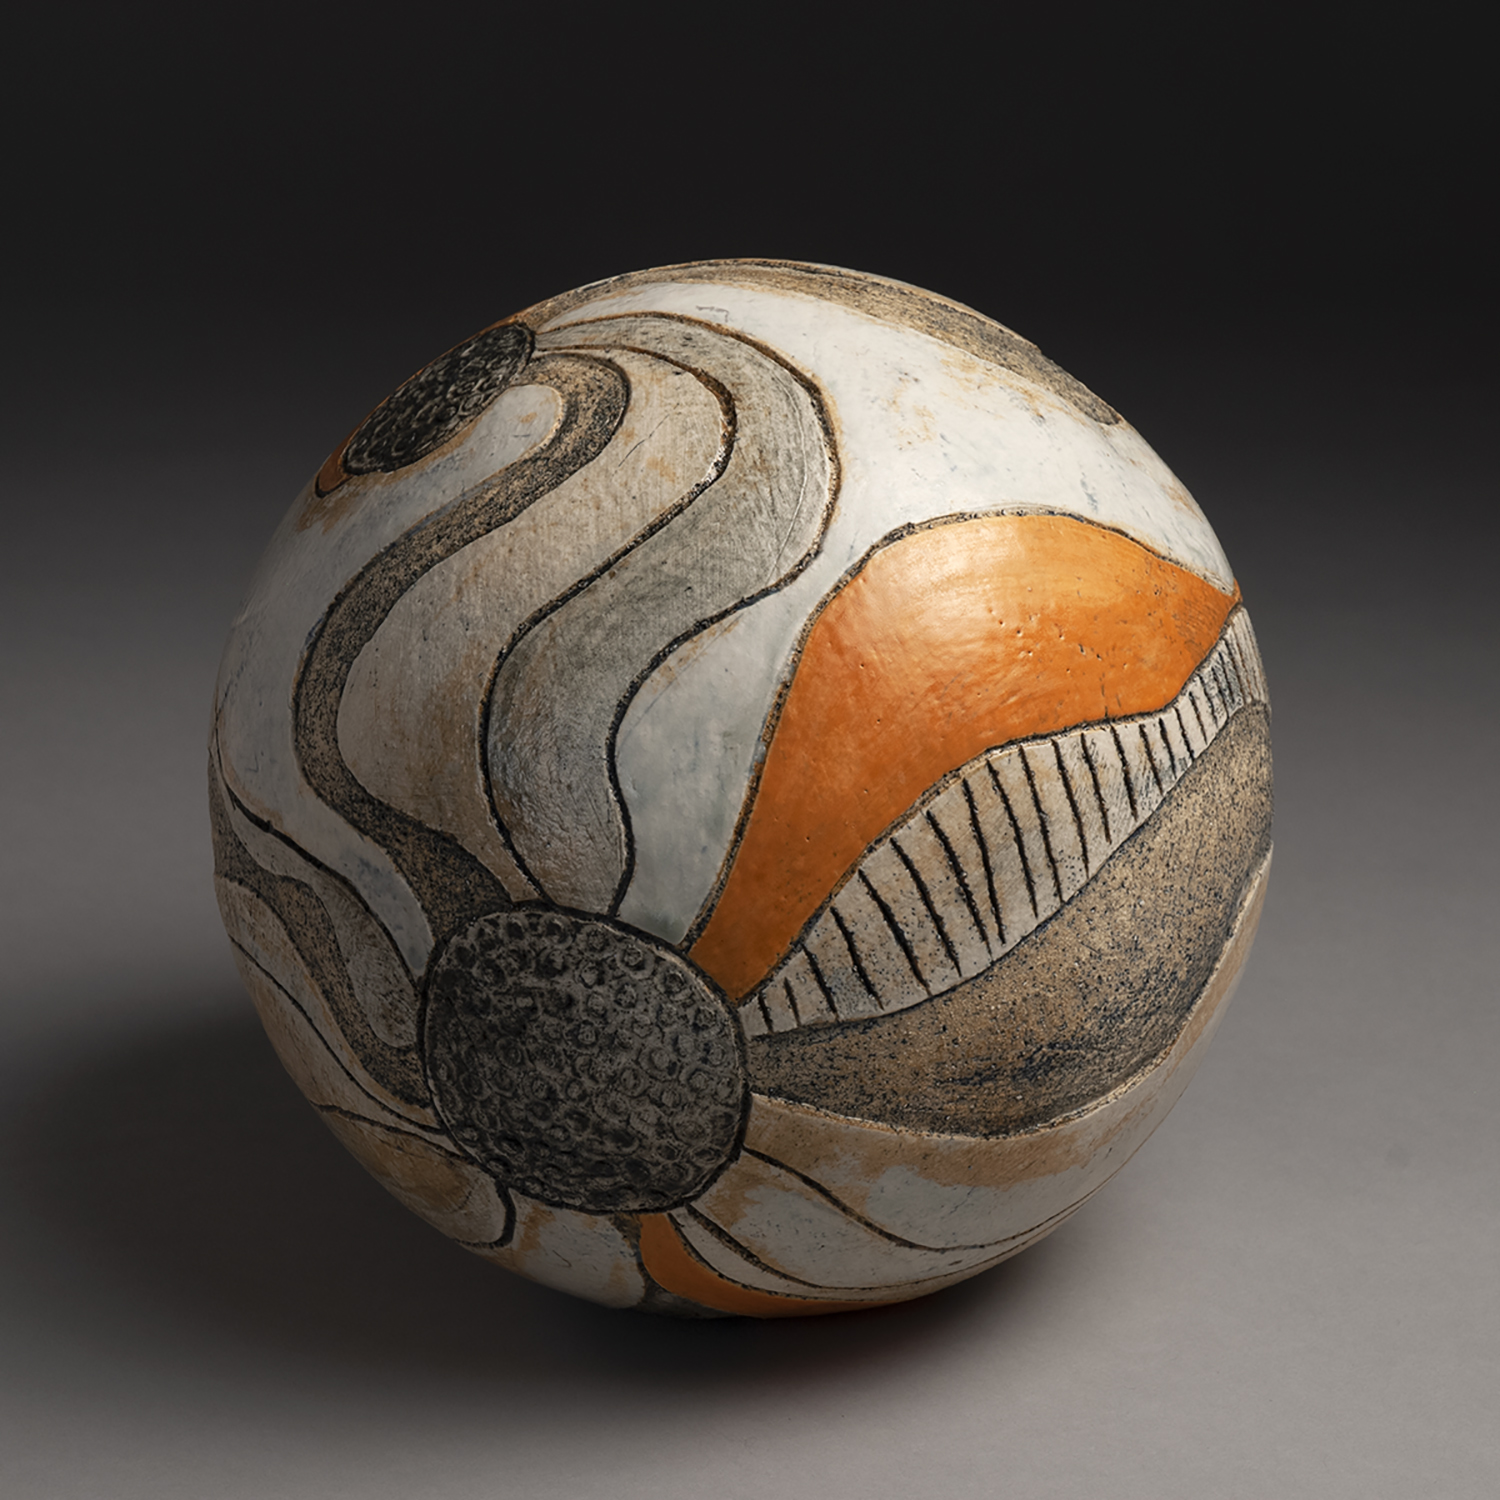 Betty Woodman, 2019, 13x13x13 inches, clay and glaze